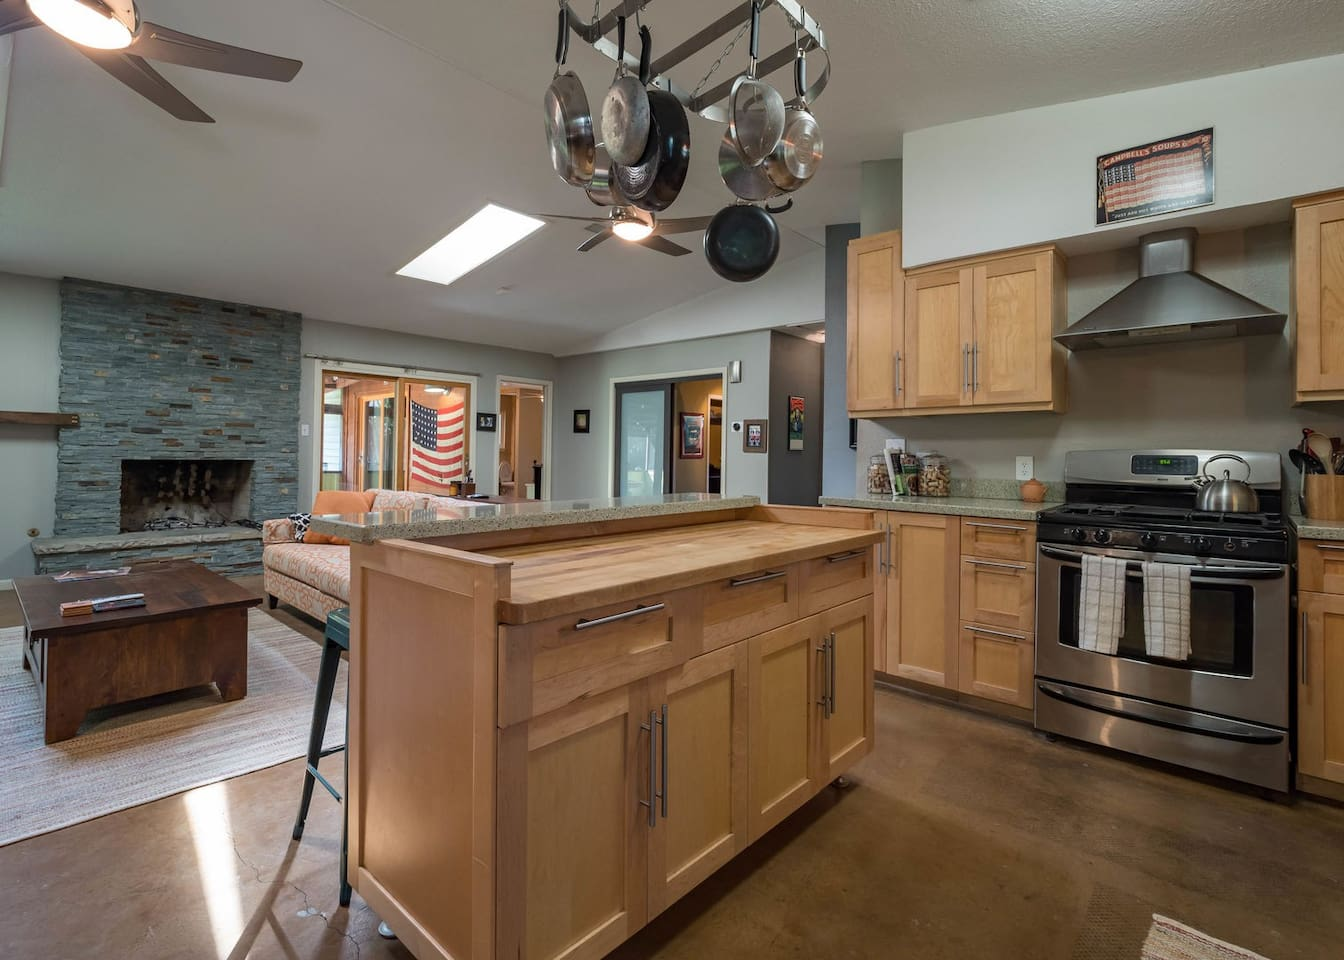 Open layout with updated appliances in the kitchen